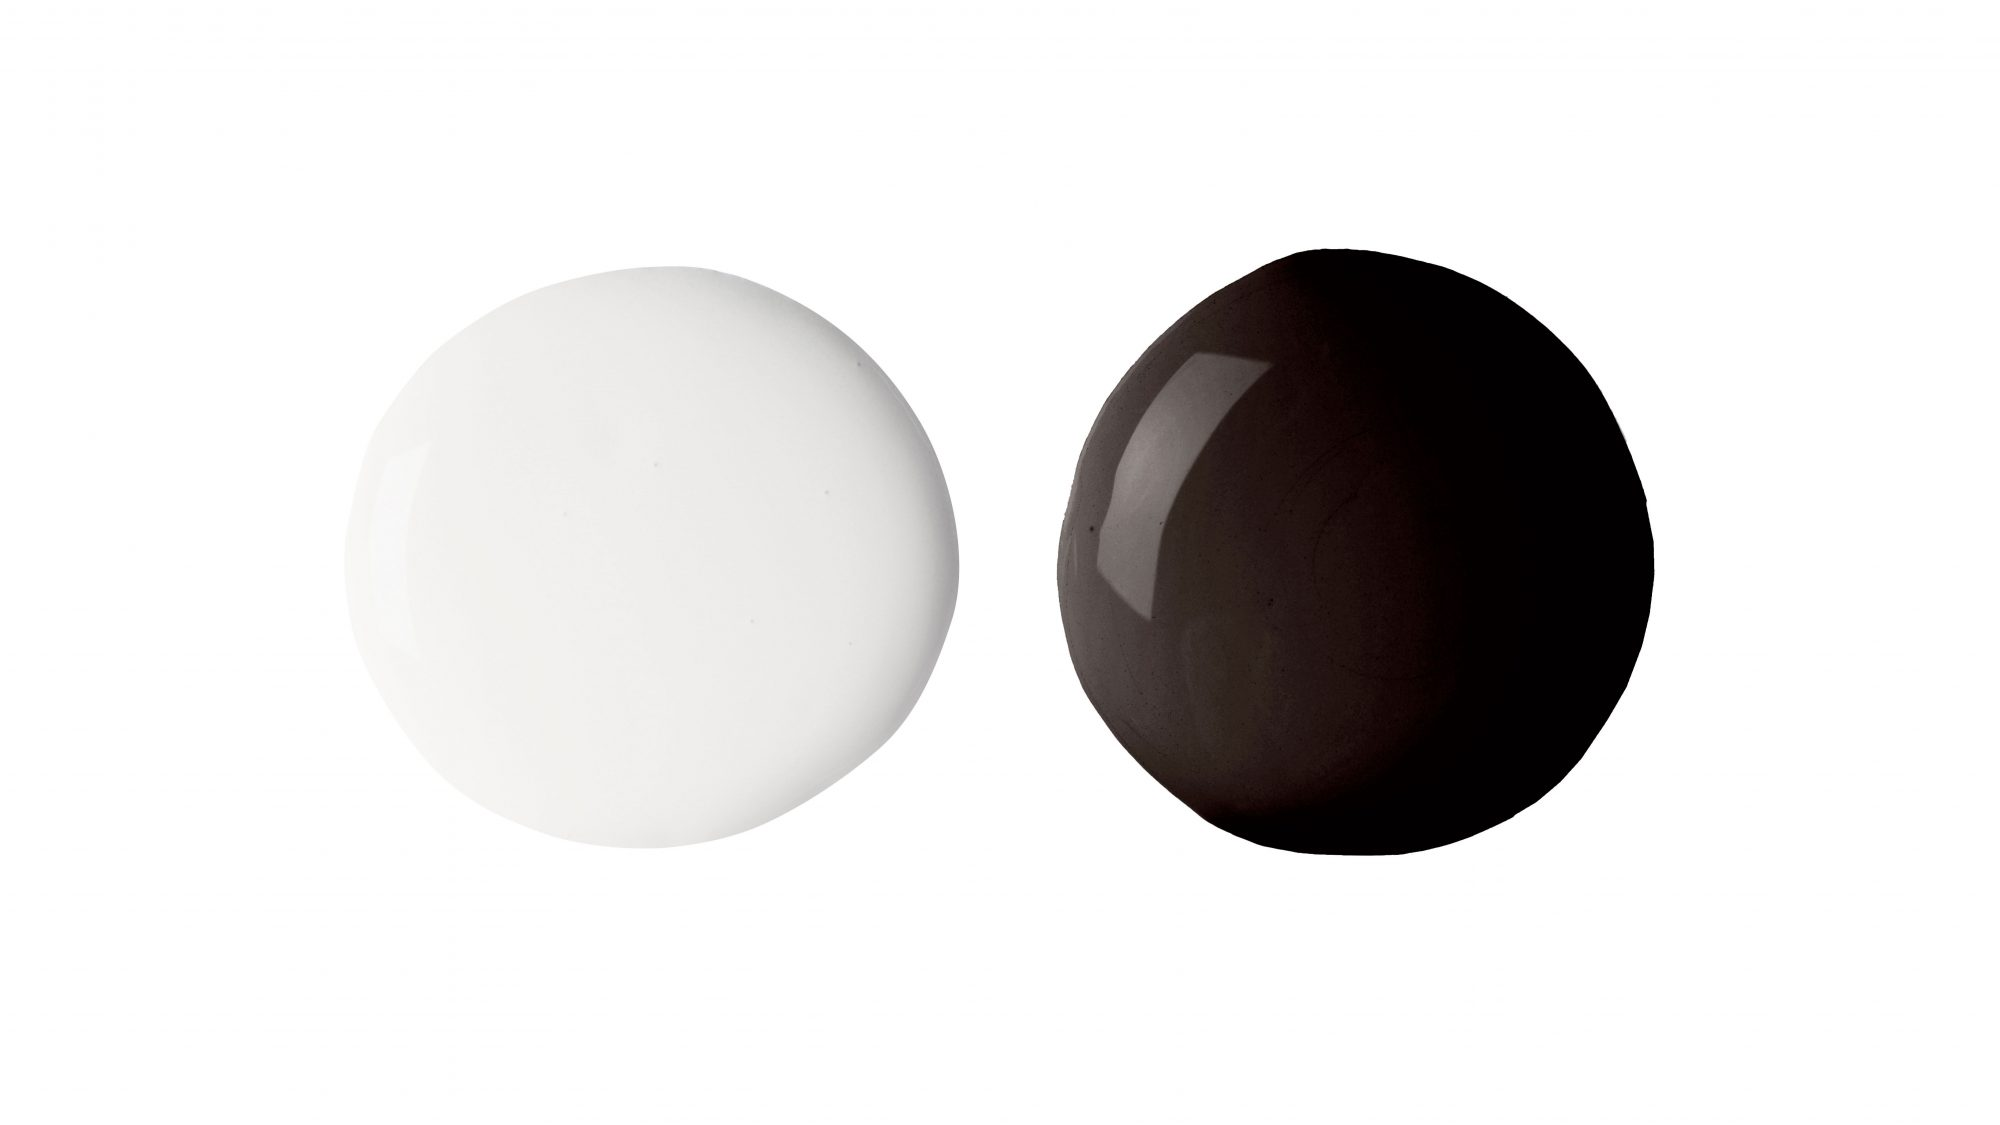 Paige Morse's Black and White Paint Choices